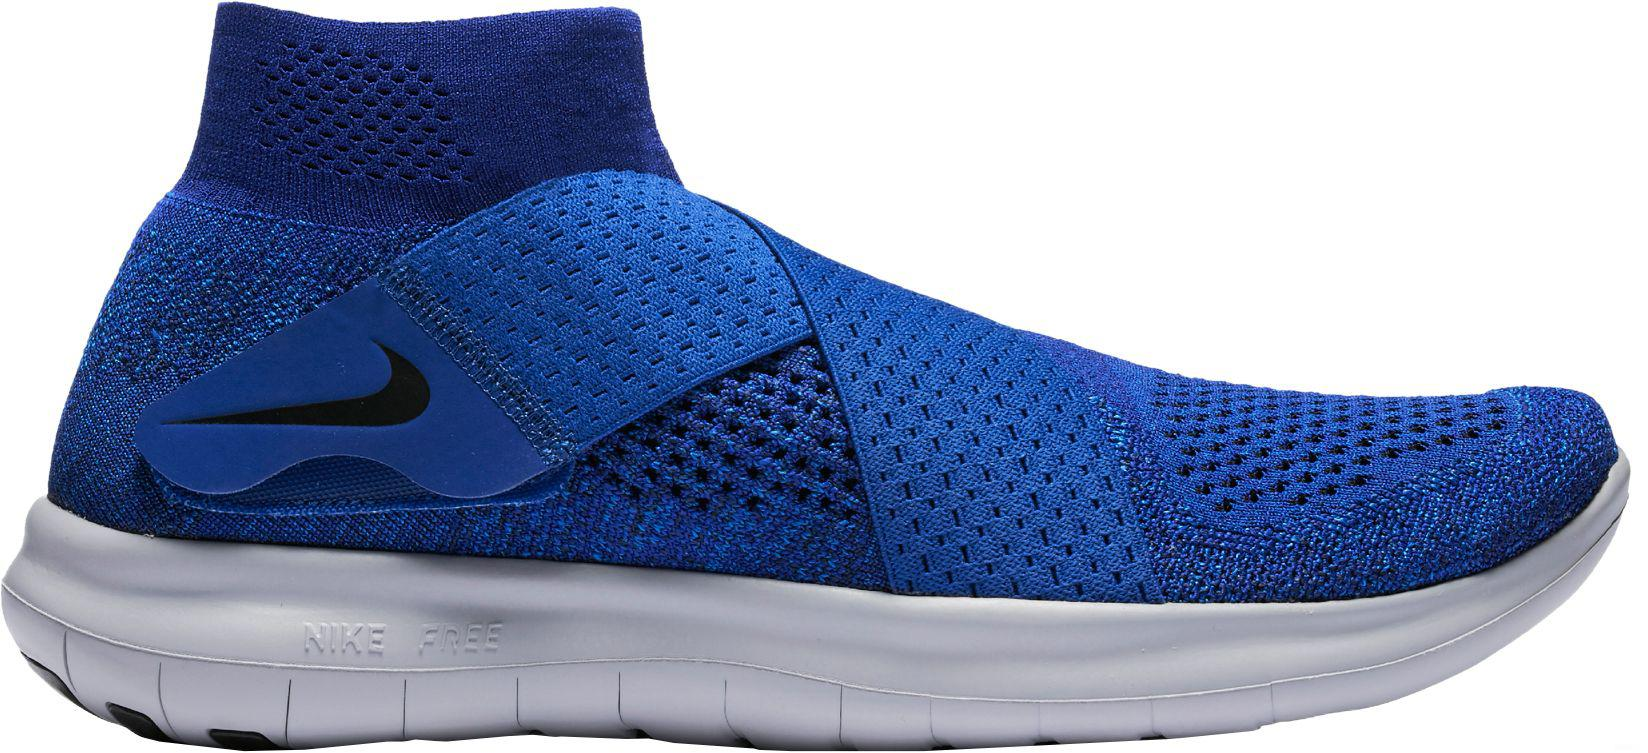 0abab9b03b82 Lyst - Nike Free Rn Motion Flyknit 2 Running Shoes in Blue for Men